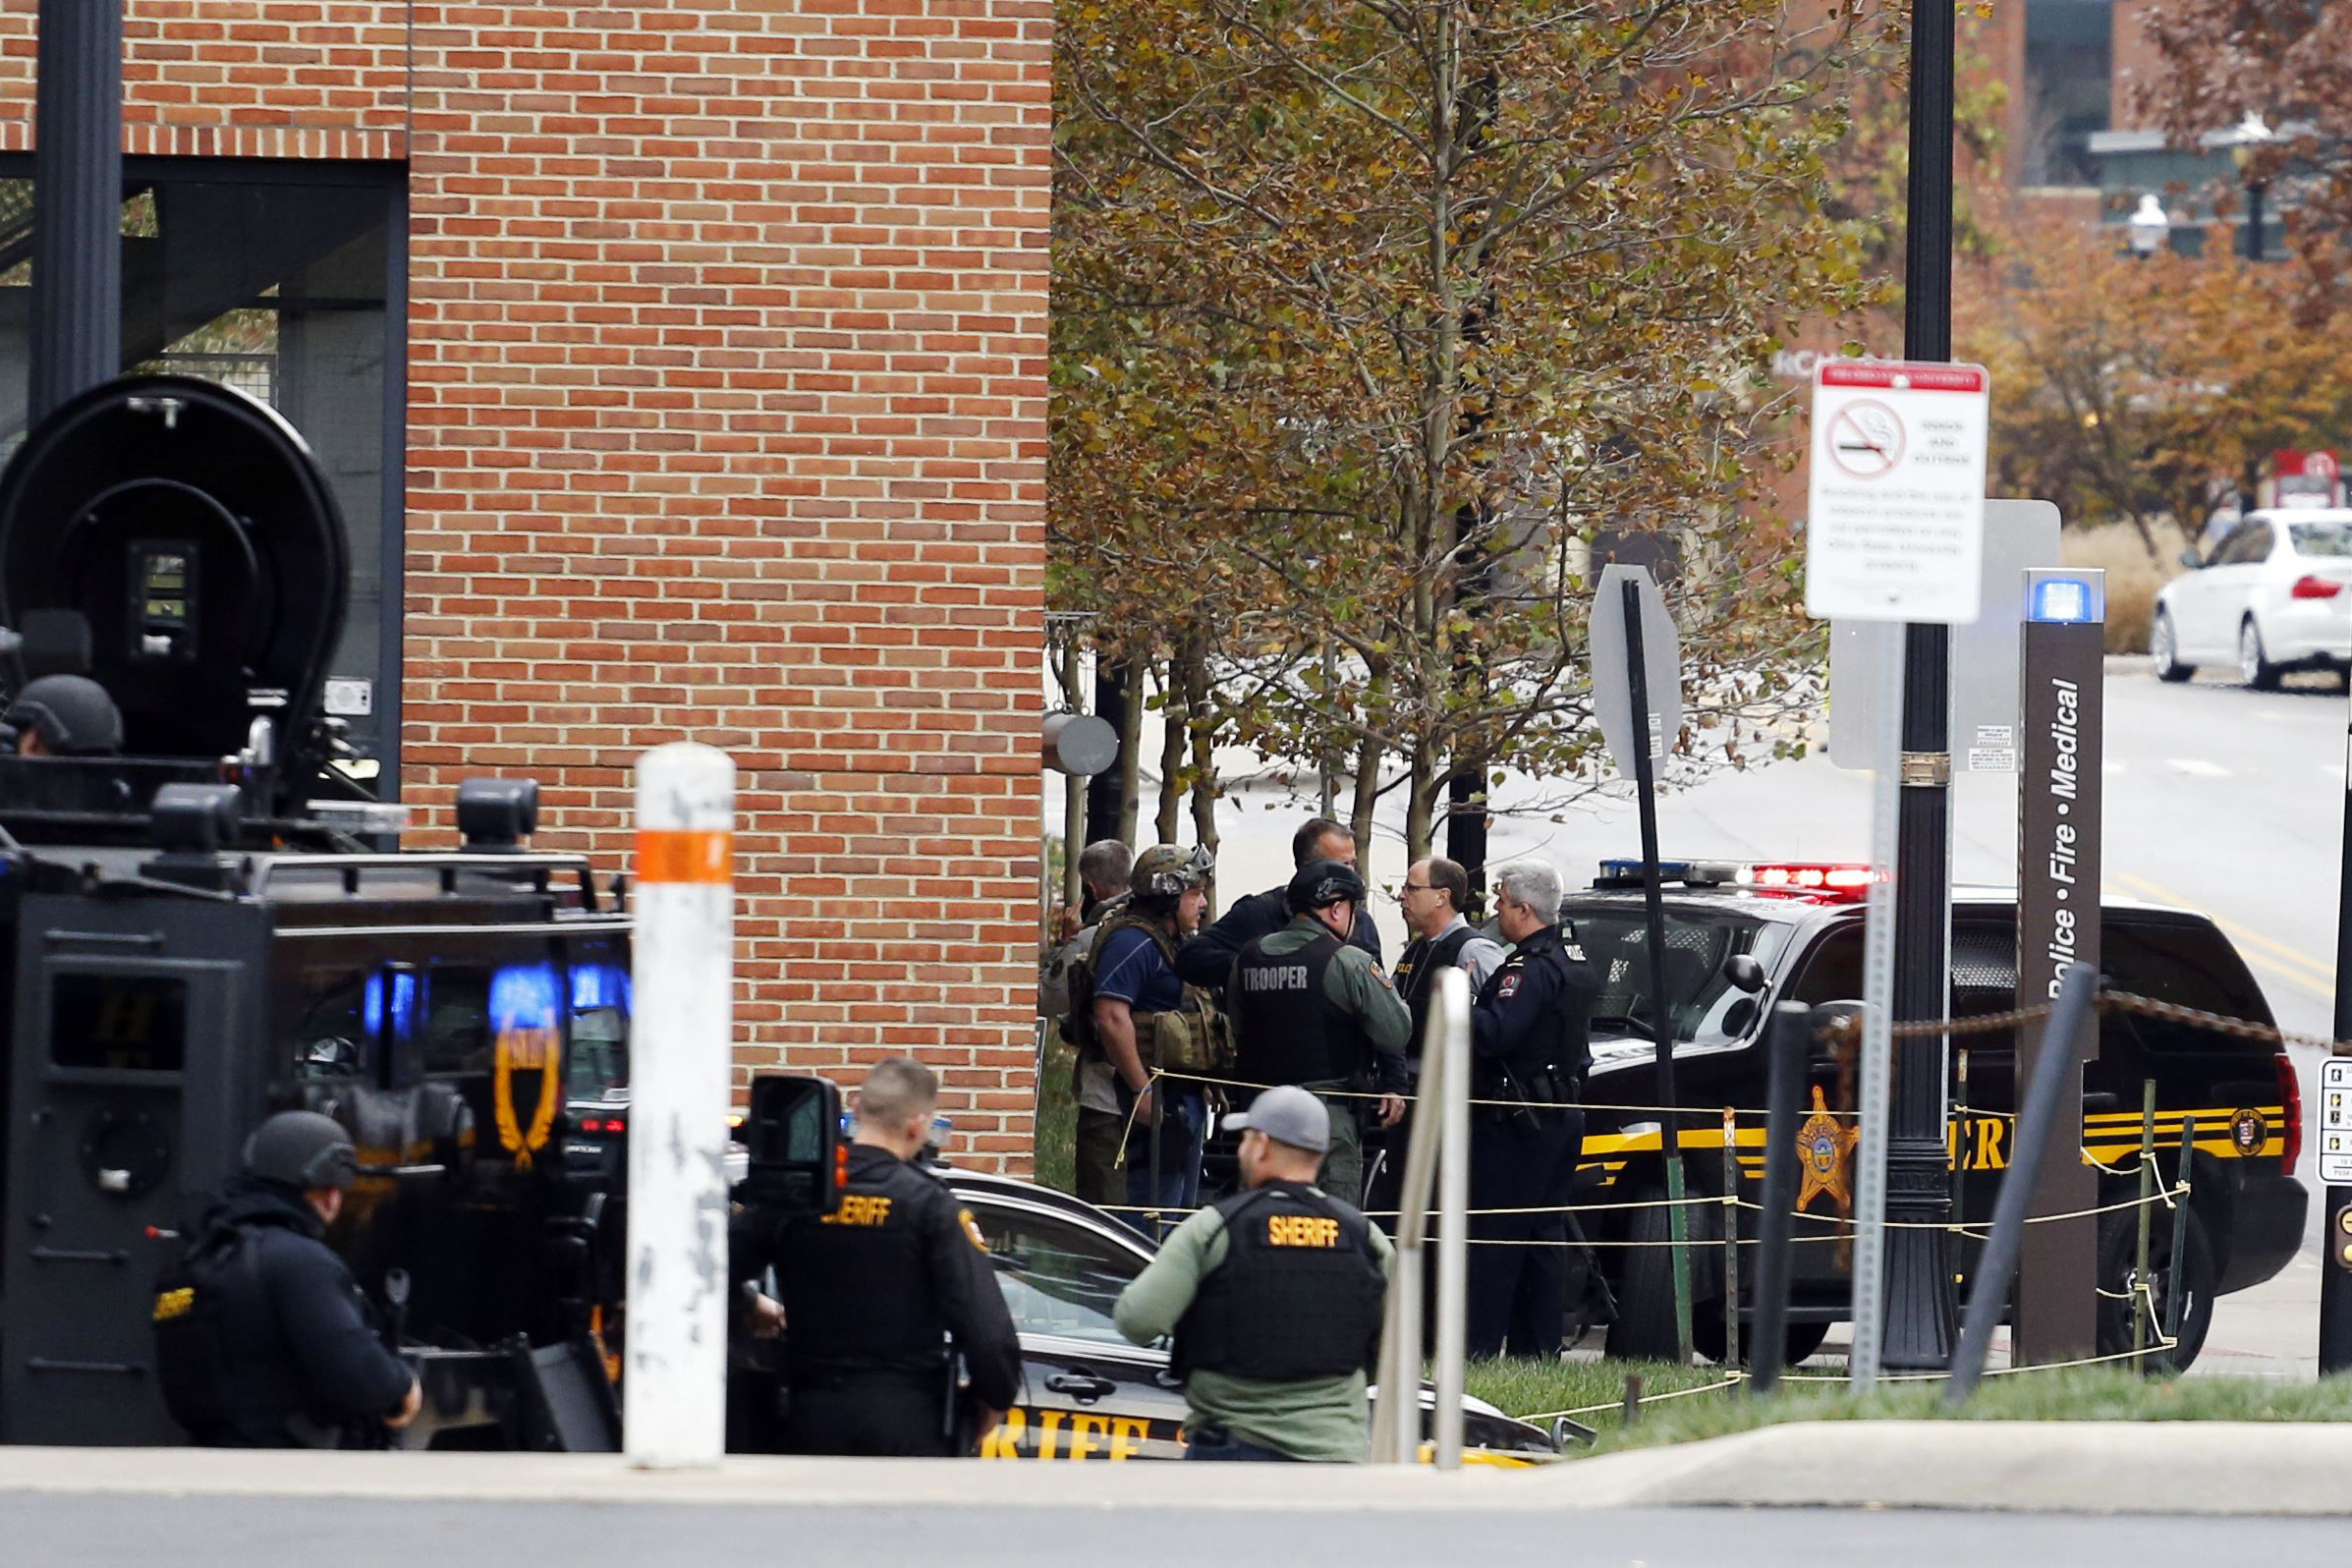 Law enforcement officers work around a parking garage on the campus of The Ohio State University Monday, Nov. 28, 2016, in Columbus, Ohio. (AP Photo/Jay LaPrete)